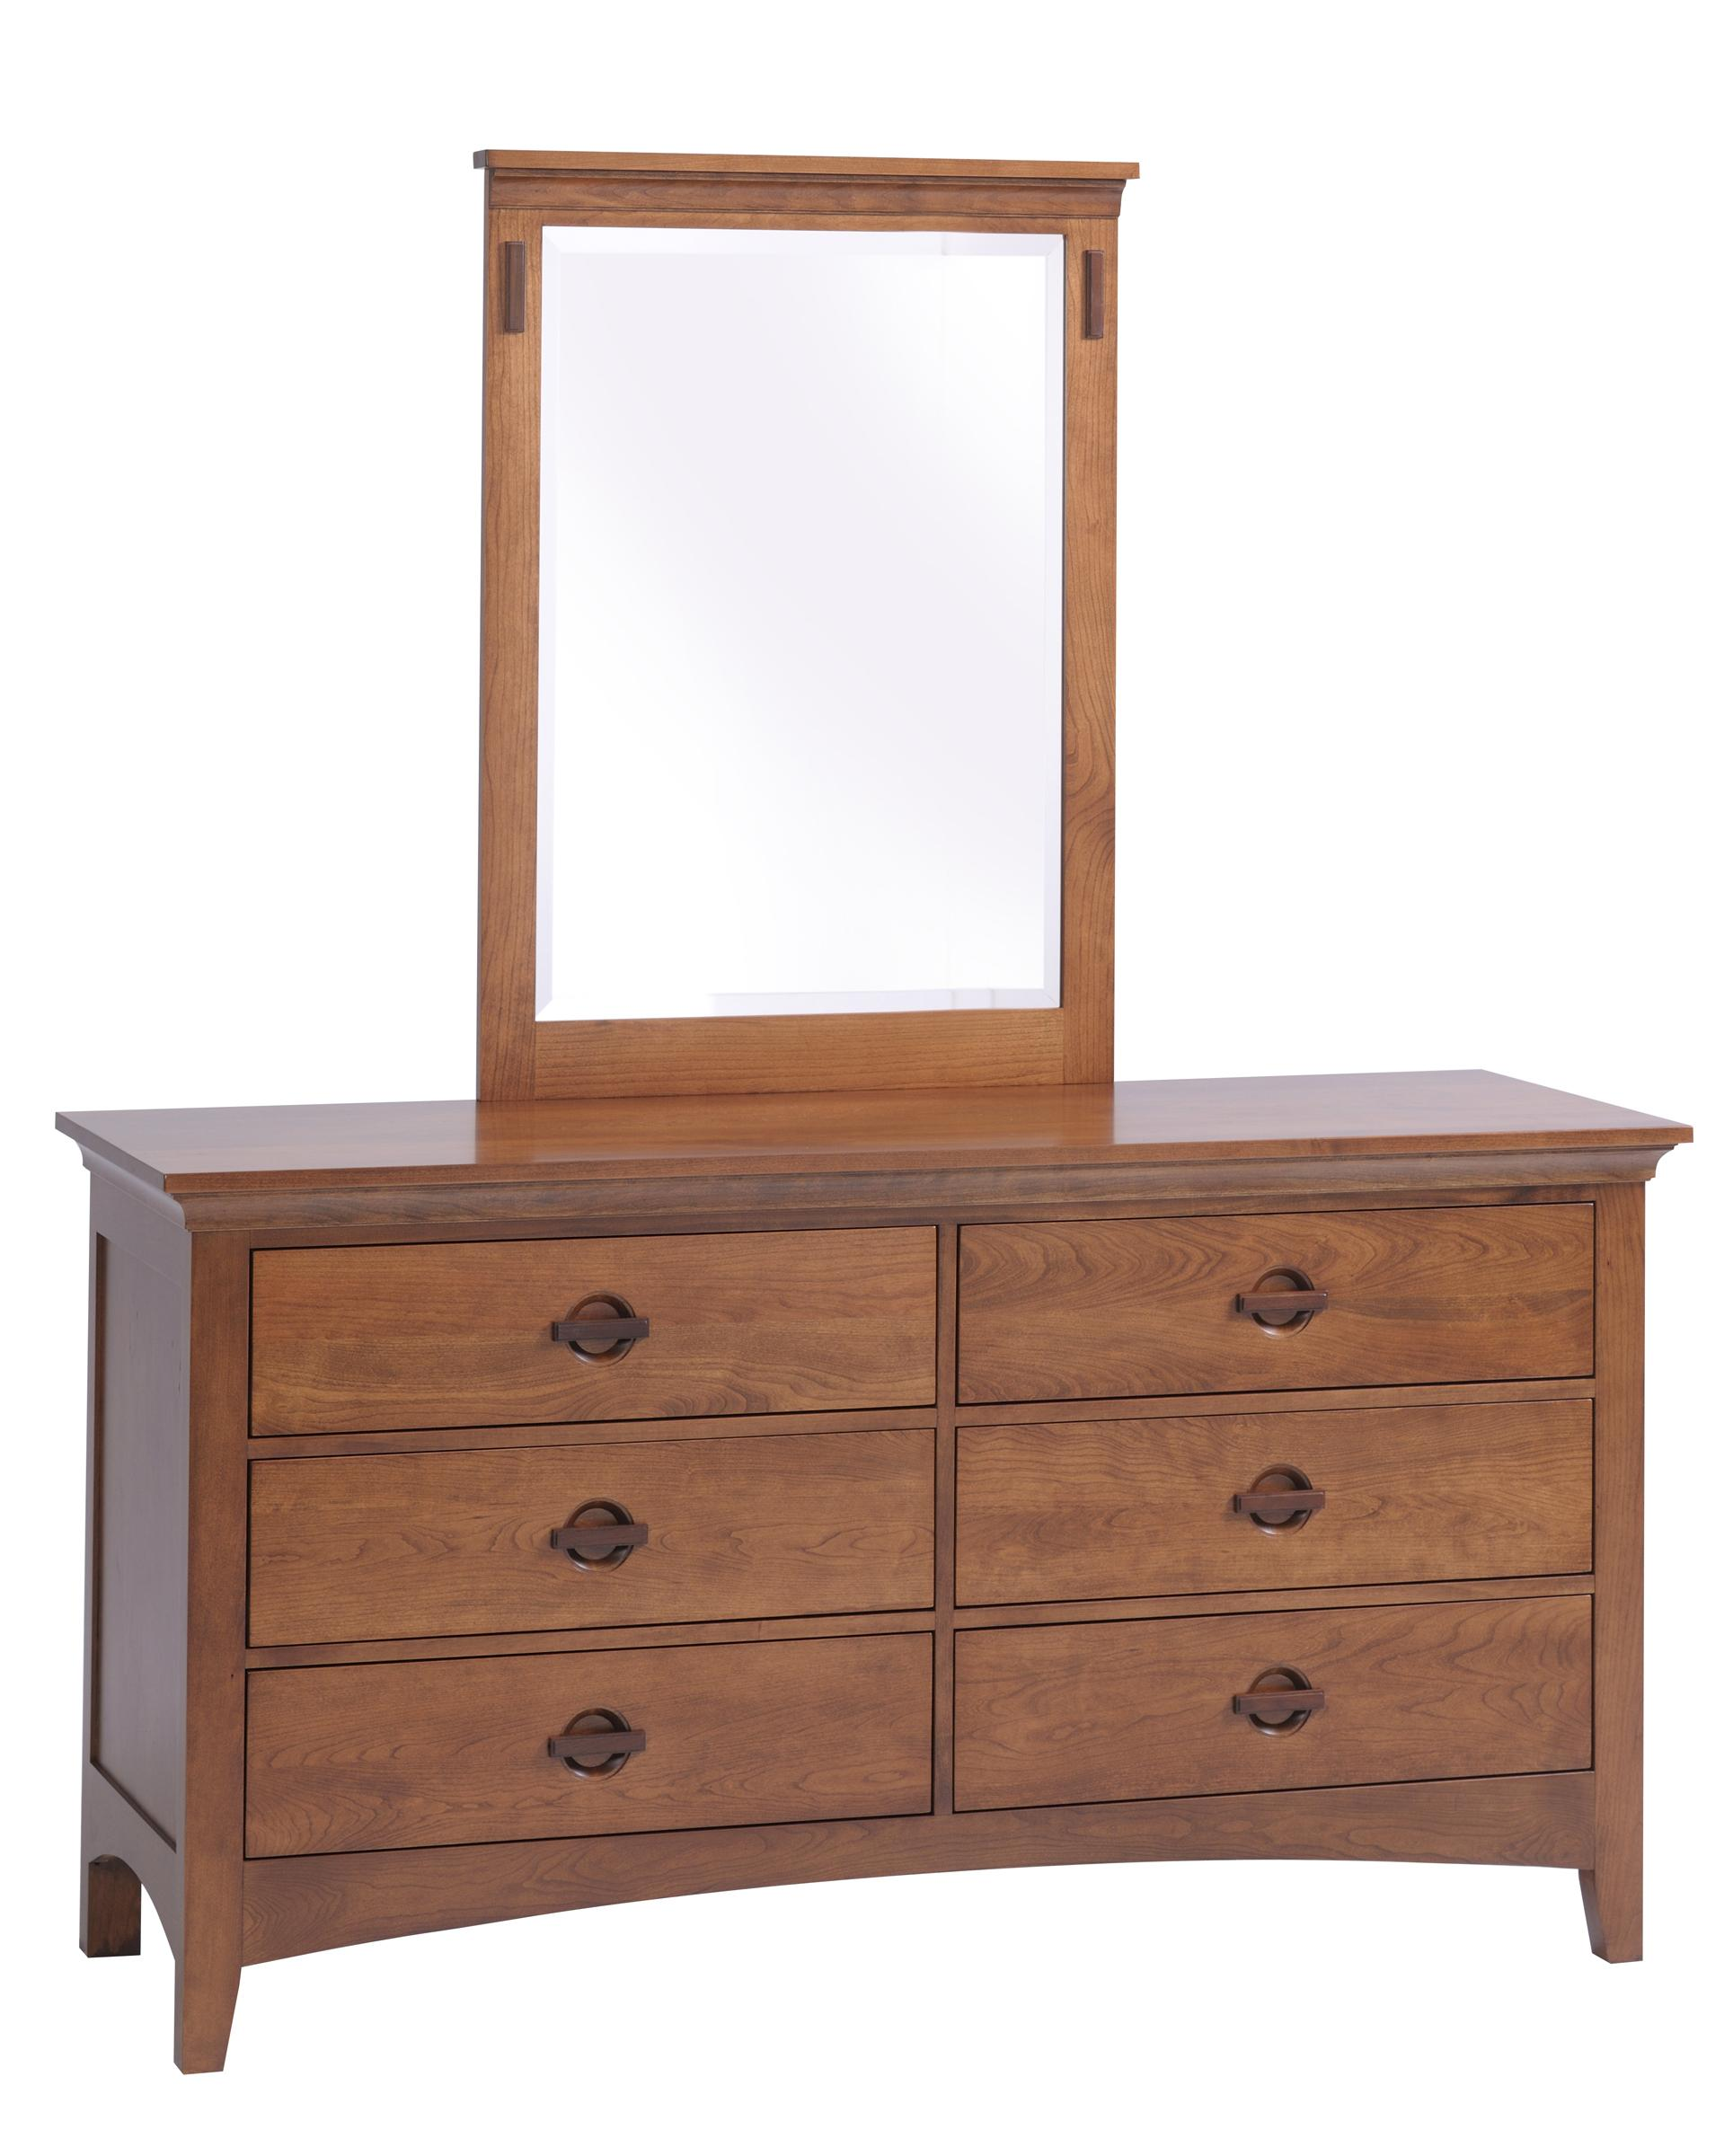 Great Lakes Dresser + Dresser Mirror by Country View Woodworking at Mueller Furniture